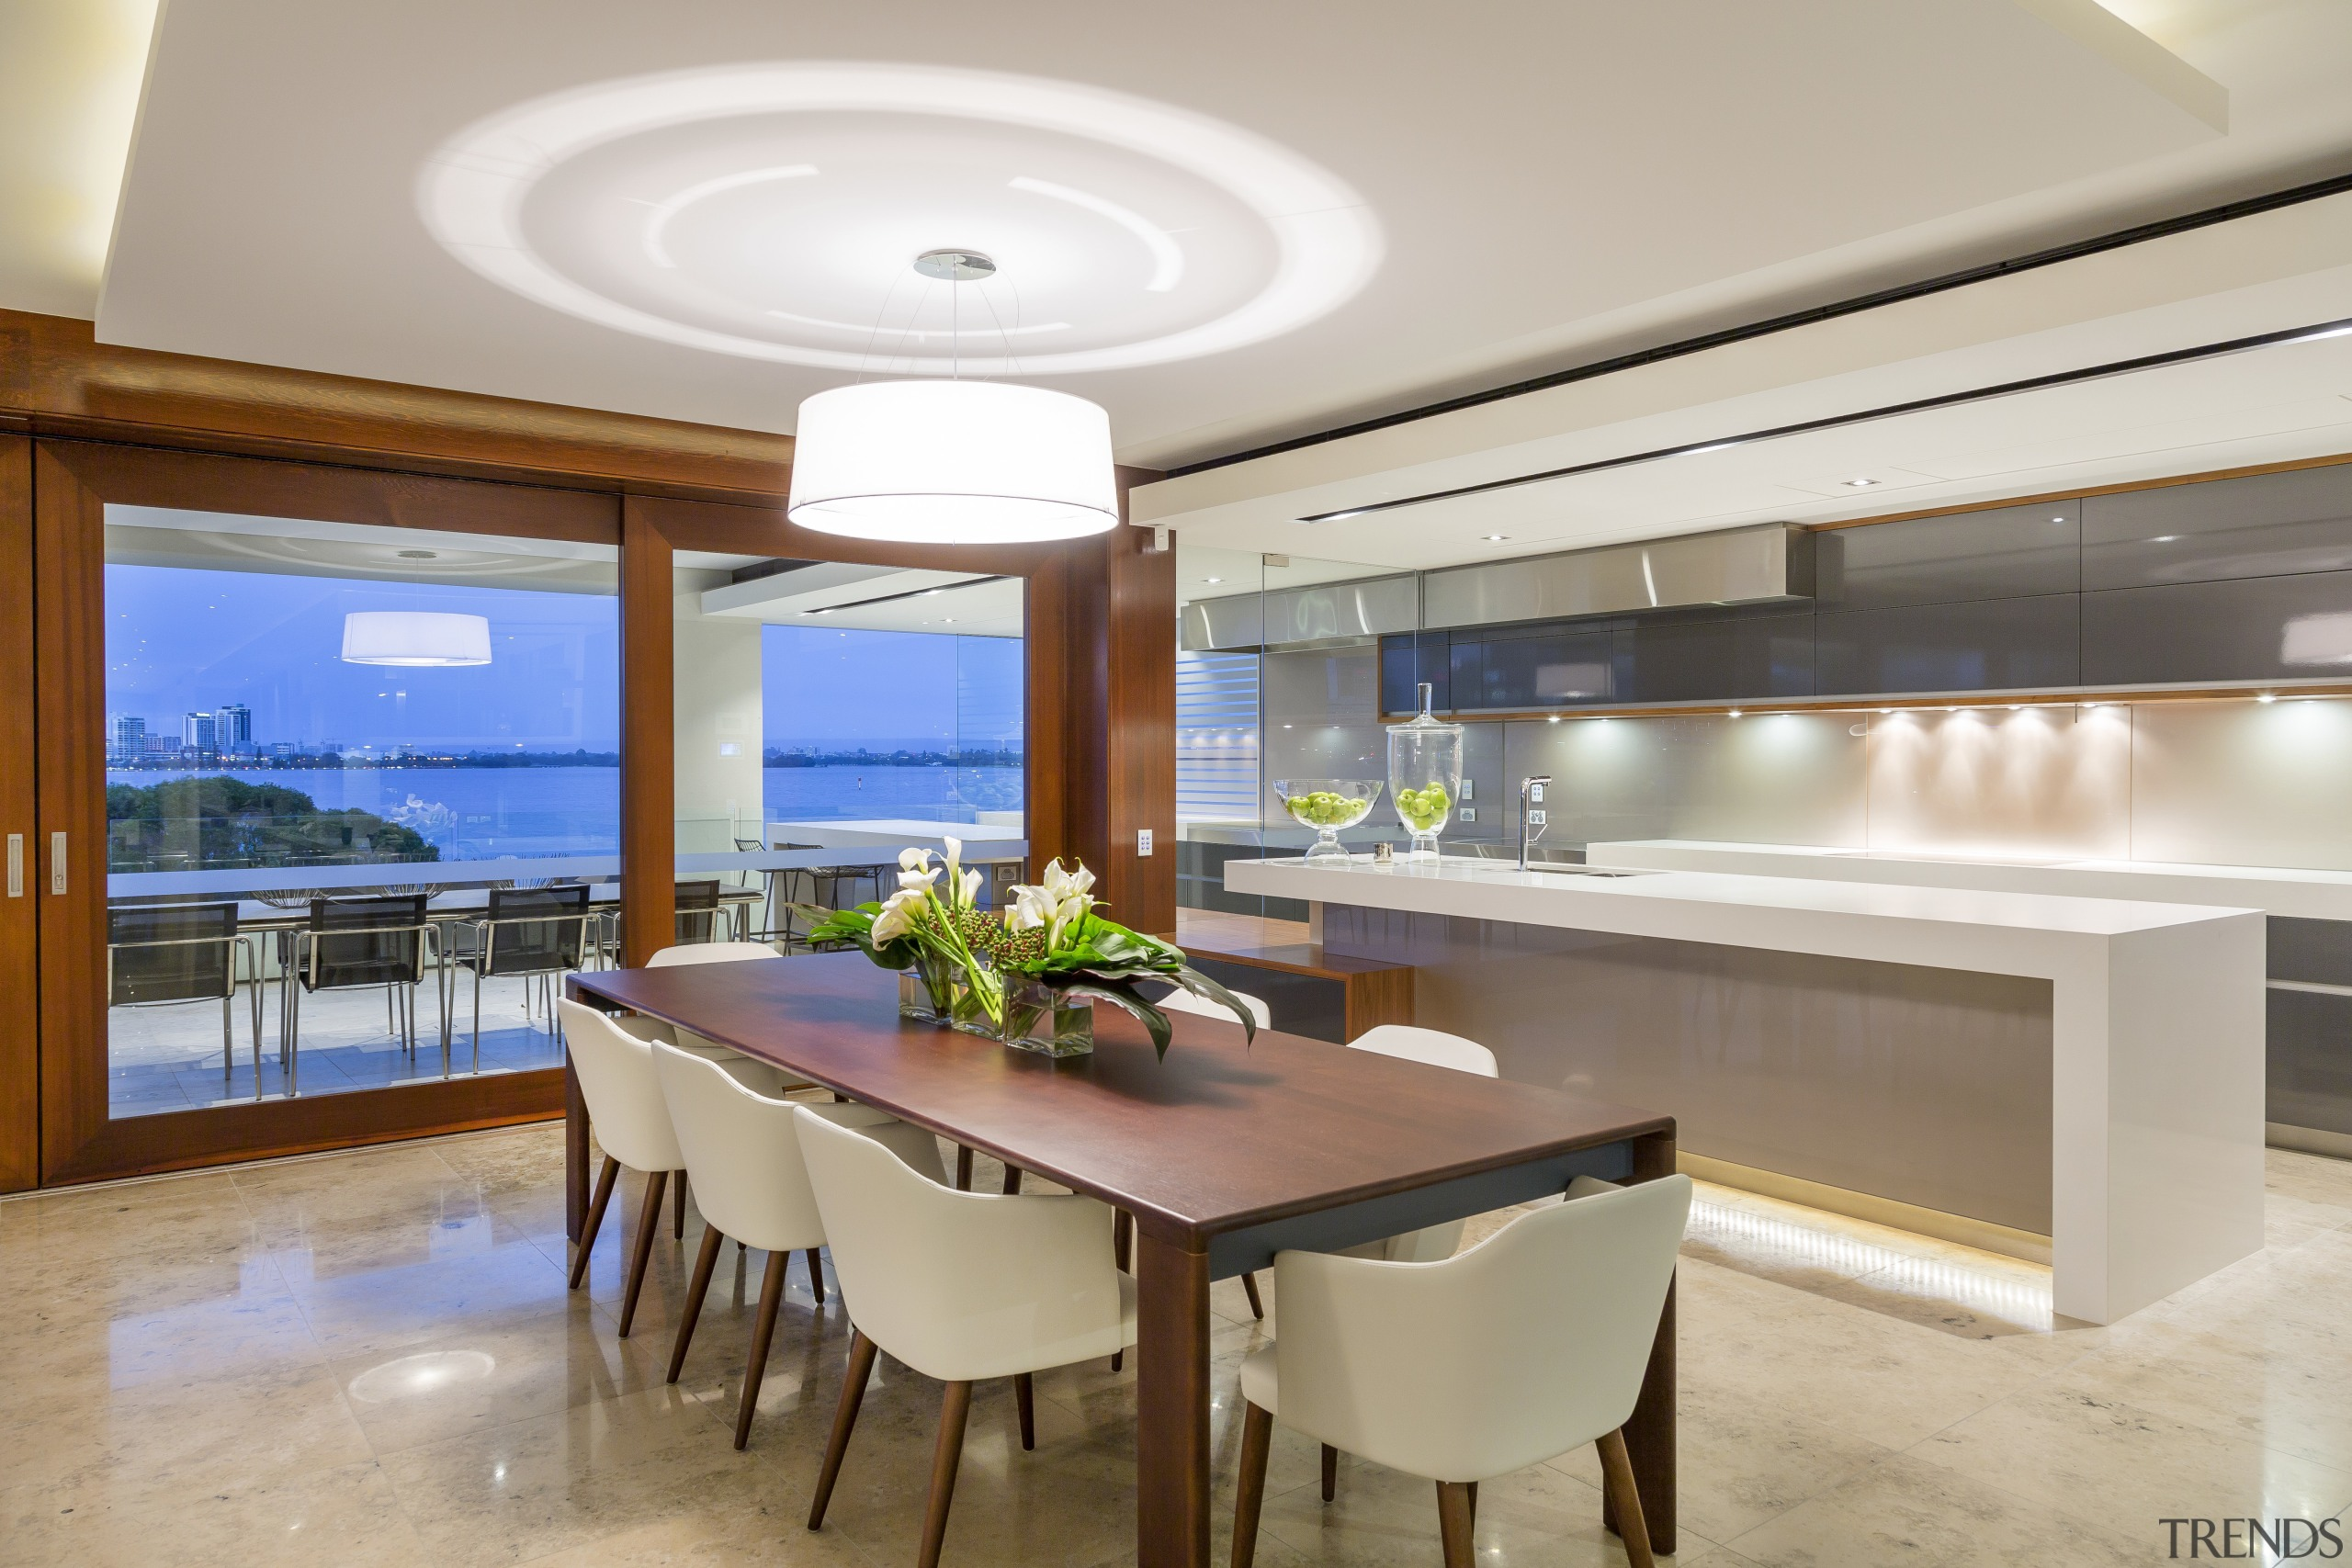 With connecting glass sliding walls, occupants of this ceiling, dining room, estate, interior design, kitchen, real estate, gray